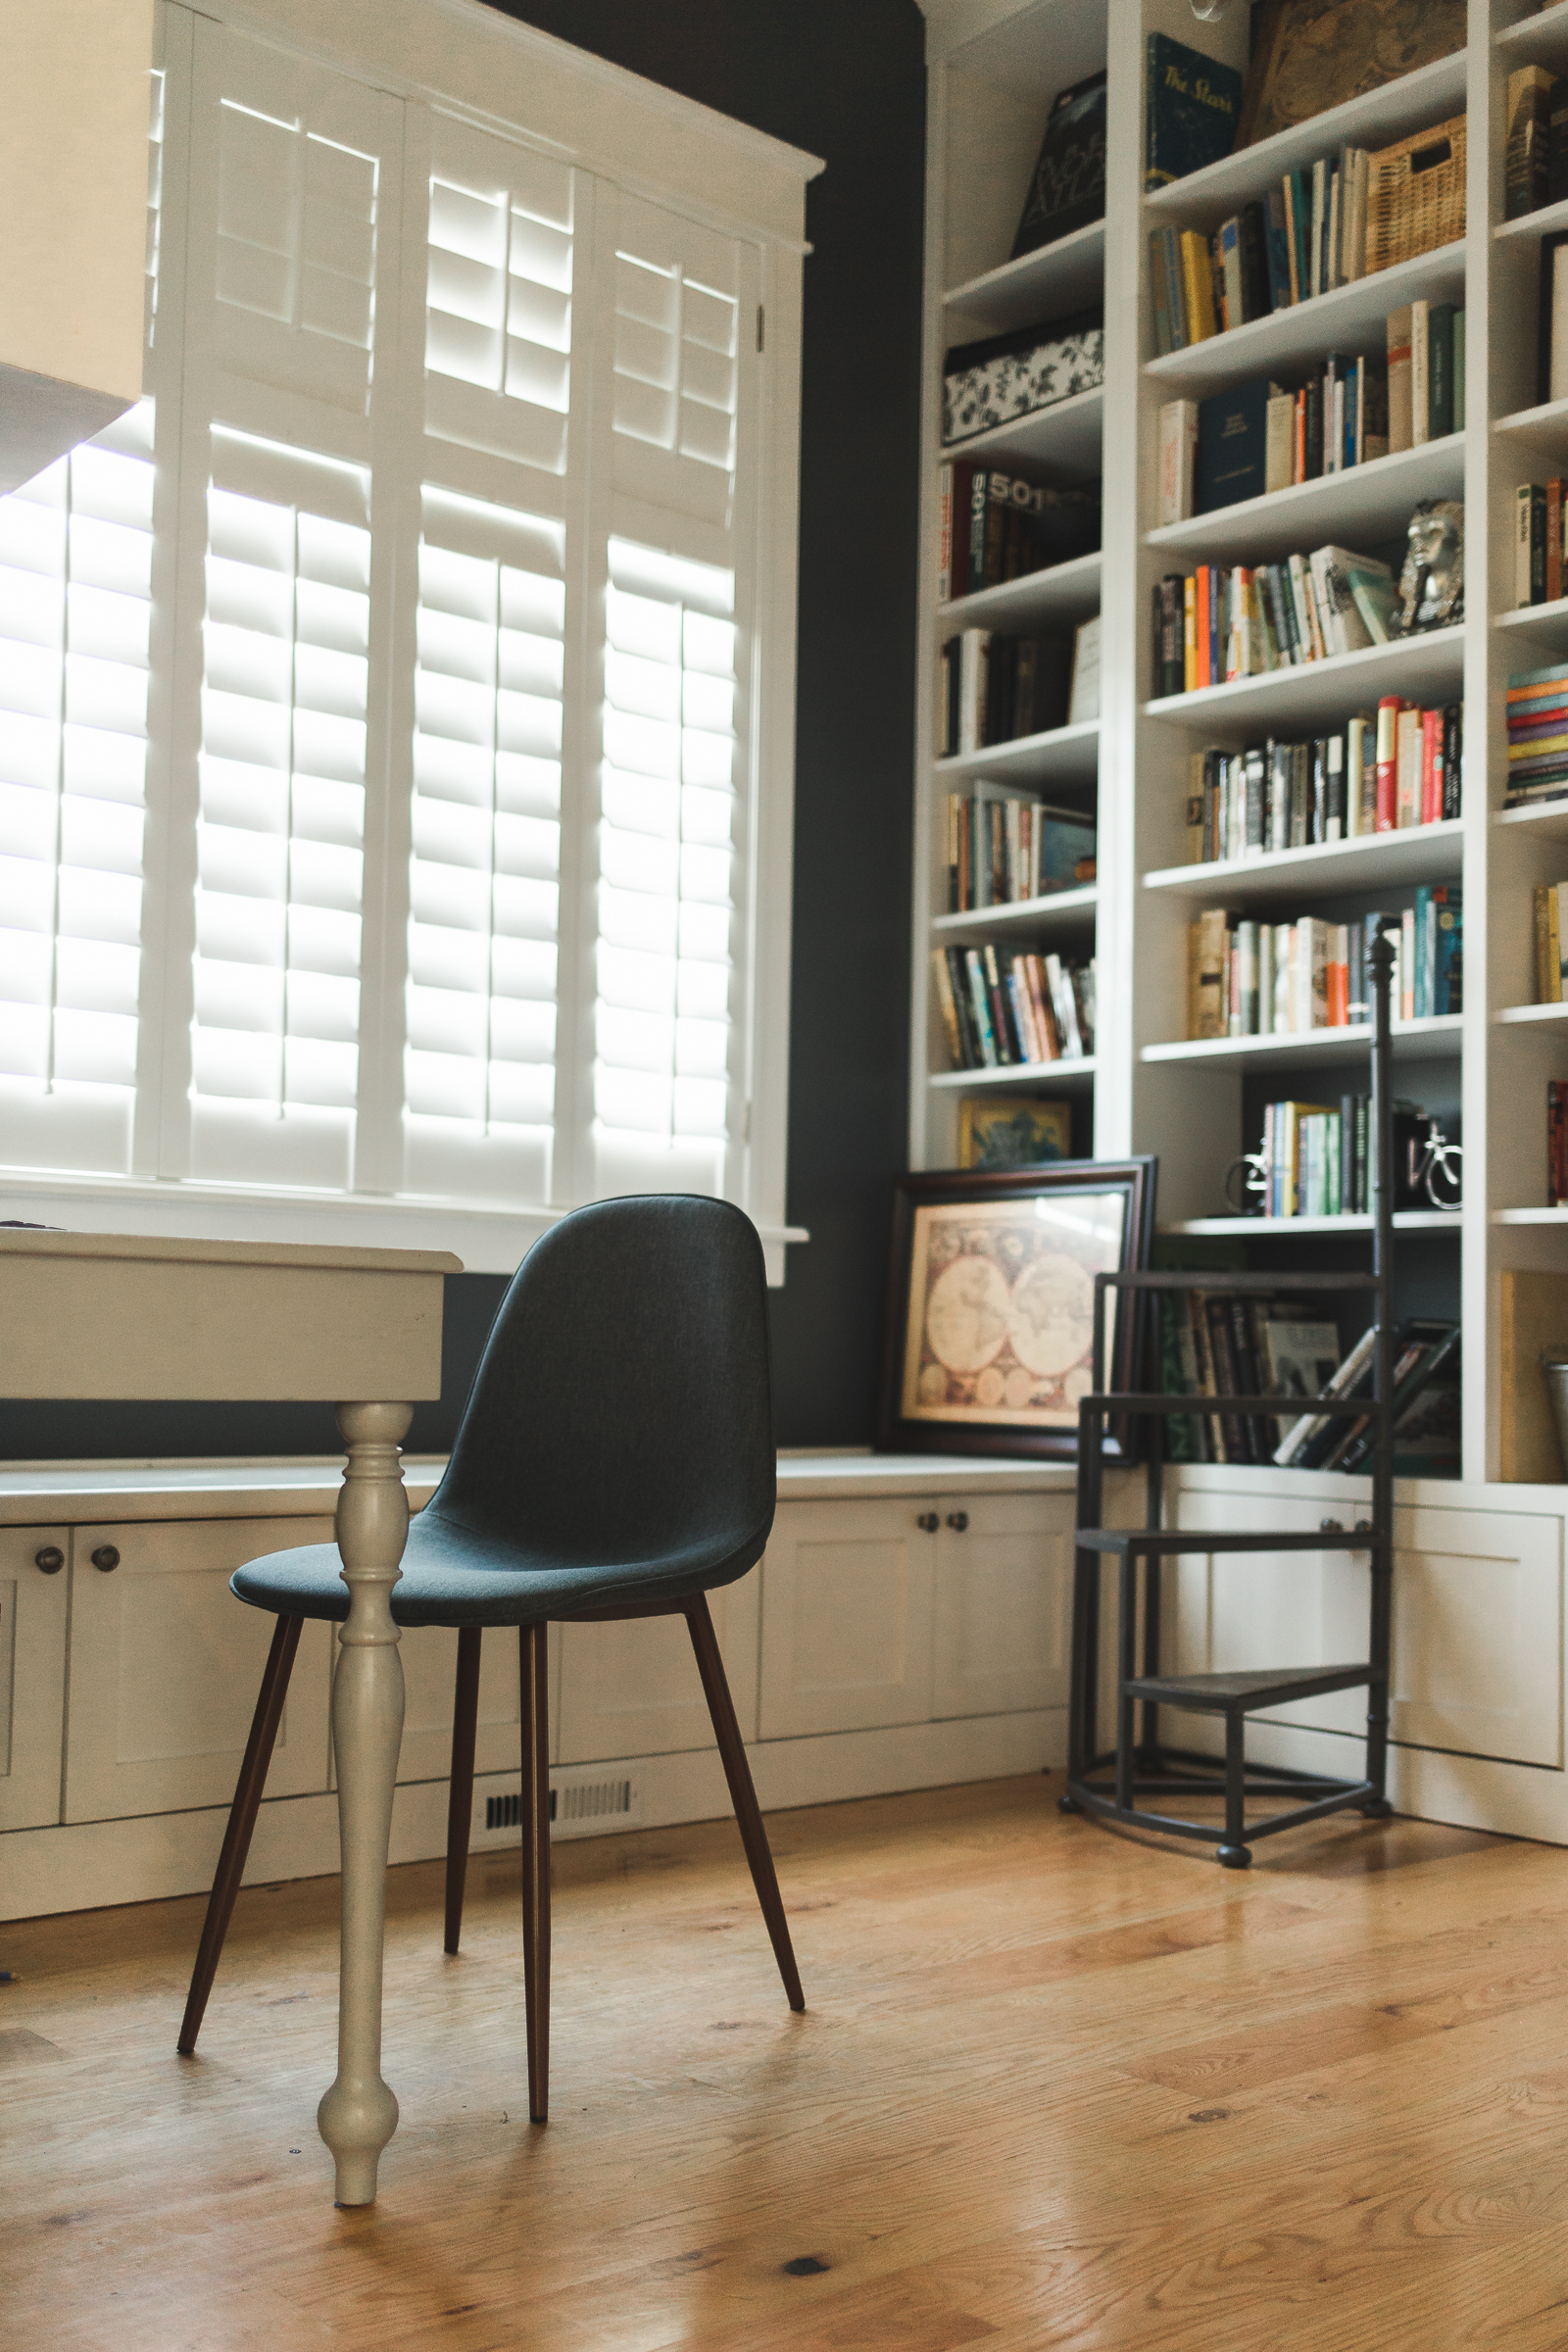 My office/library is where I spend a LOT of my time during the day, especially when I'm editing. It's my favorite room in the house (closely followed by my bedroom), and I wanted to show its inviting beauty.